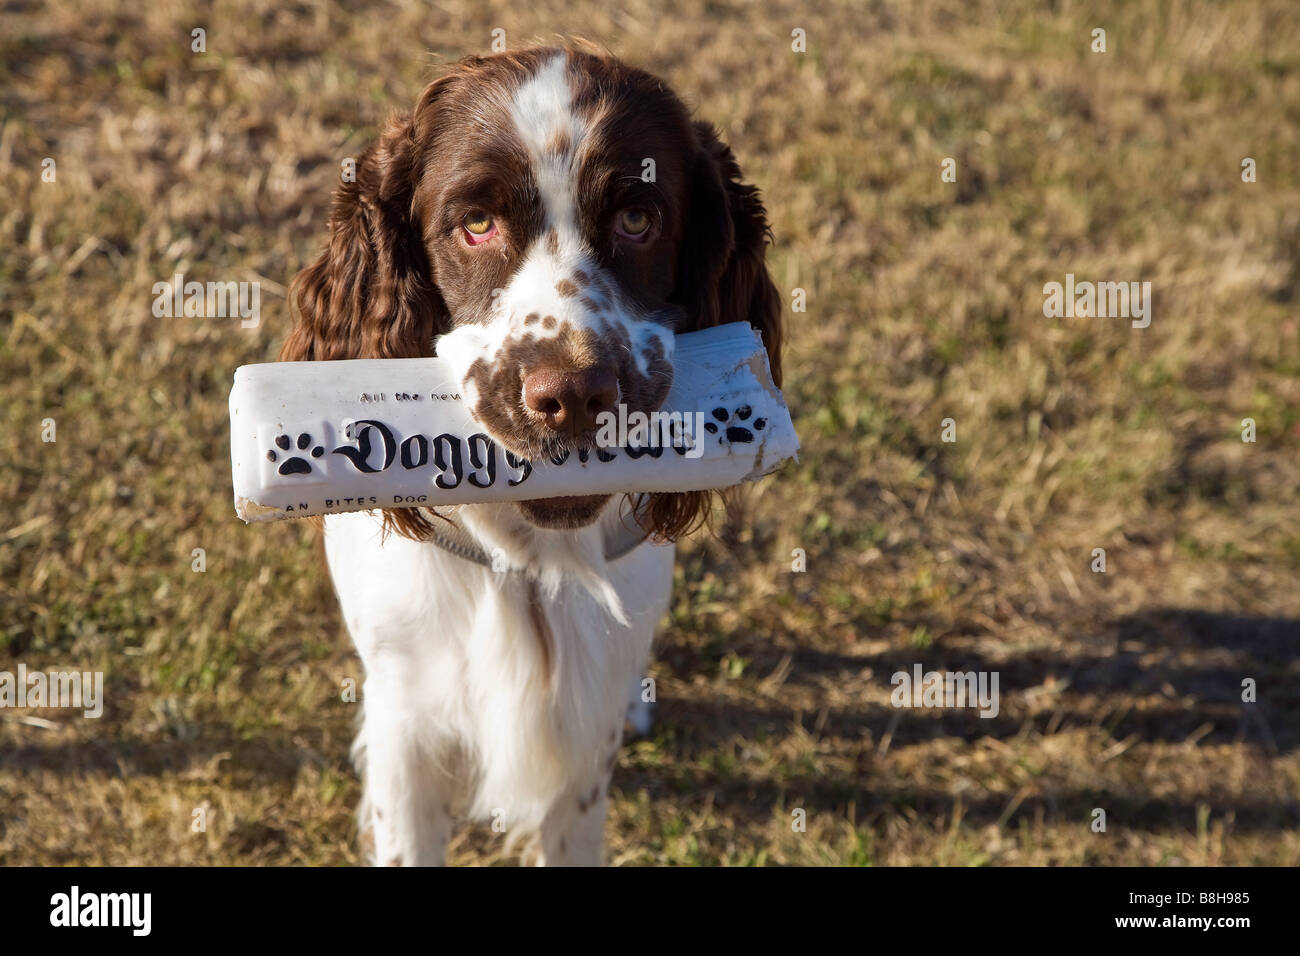 Doggy News newpaper for dogs - Stock Image